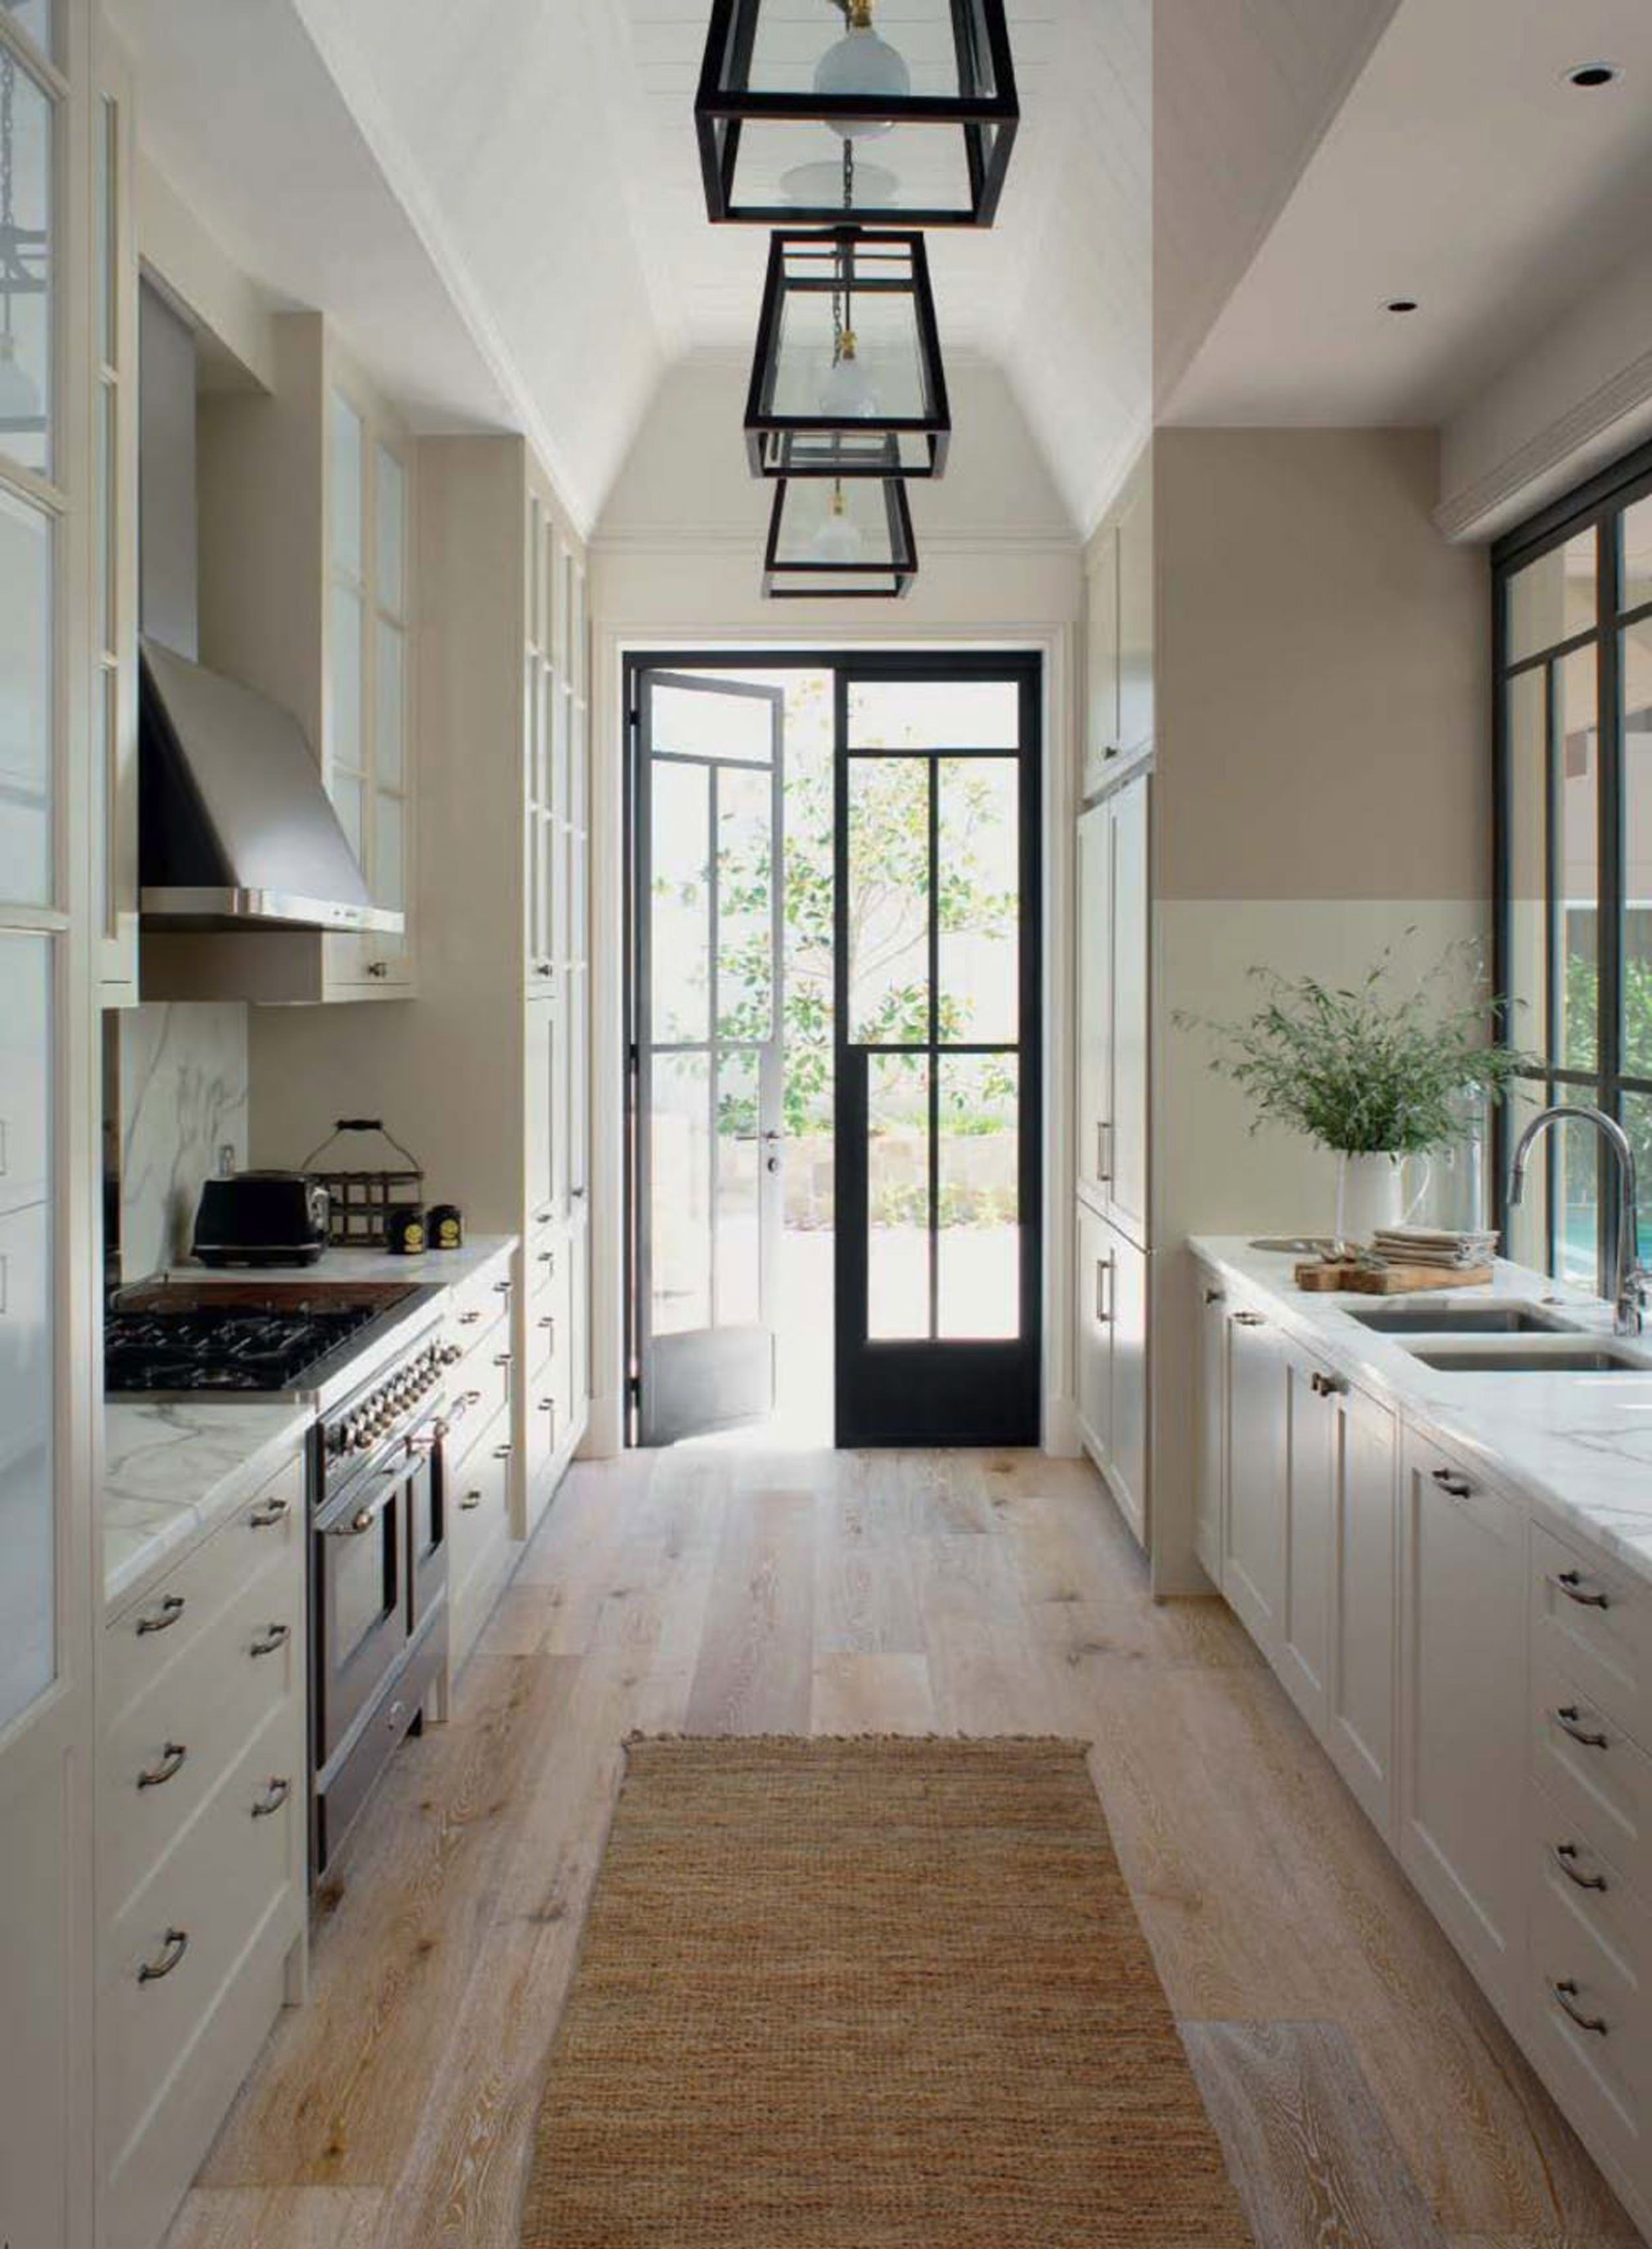 Mountain Fixer-Upper Lighting: The Modern and Traditional Options in ...